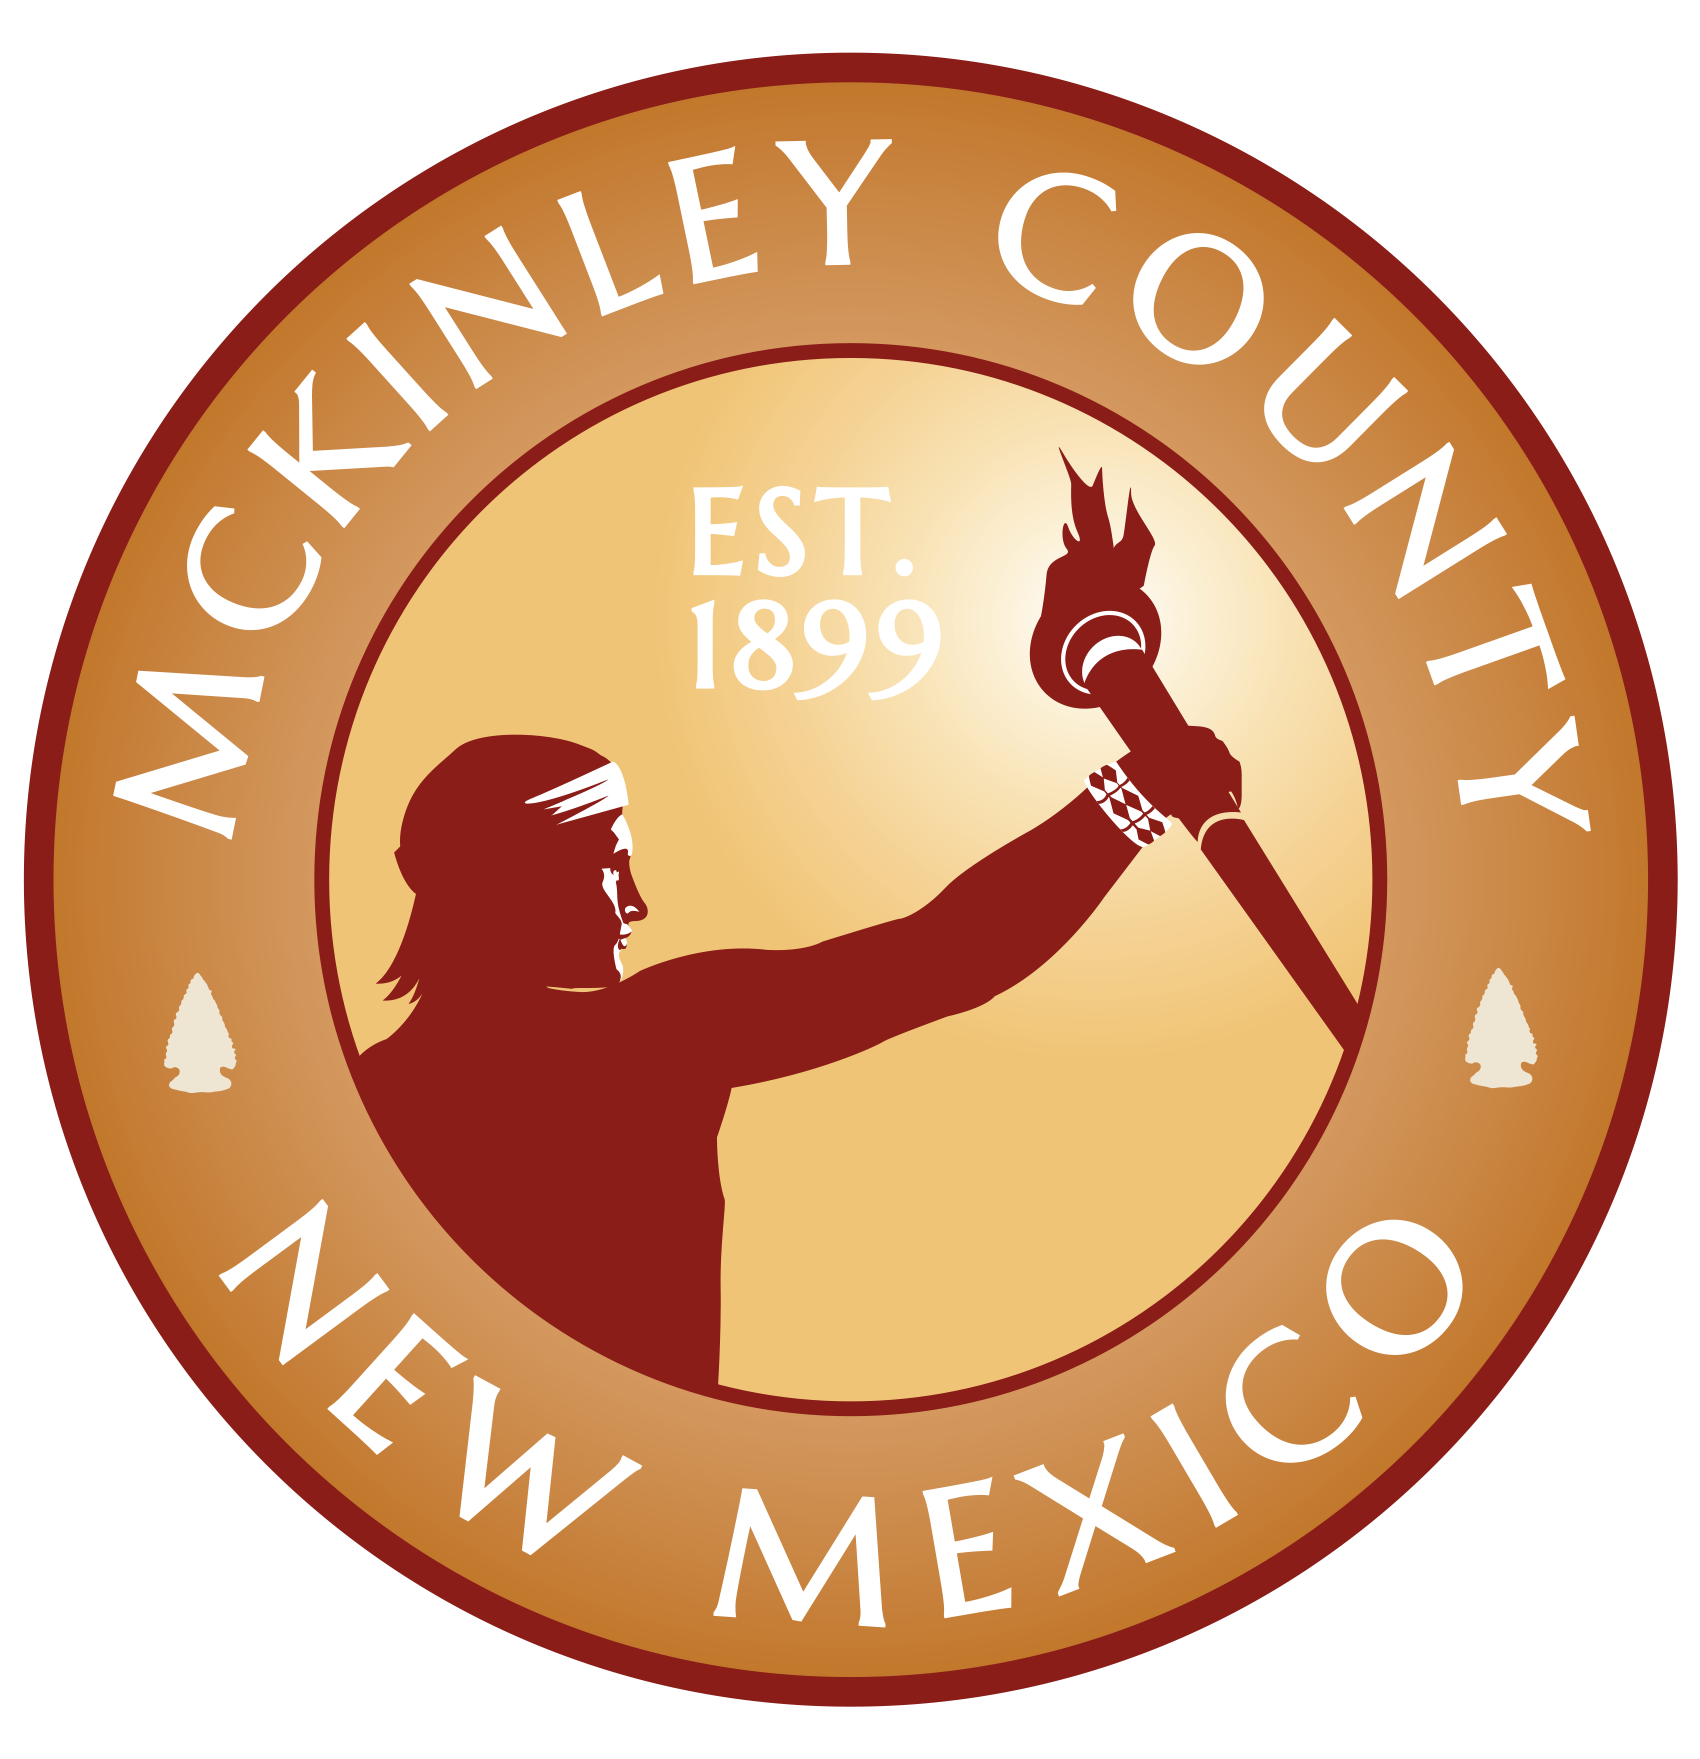 Mckinley County Seal